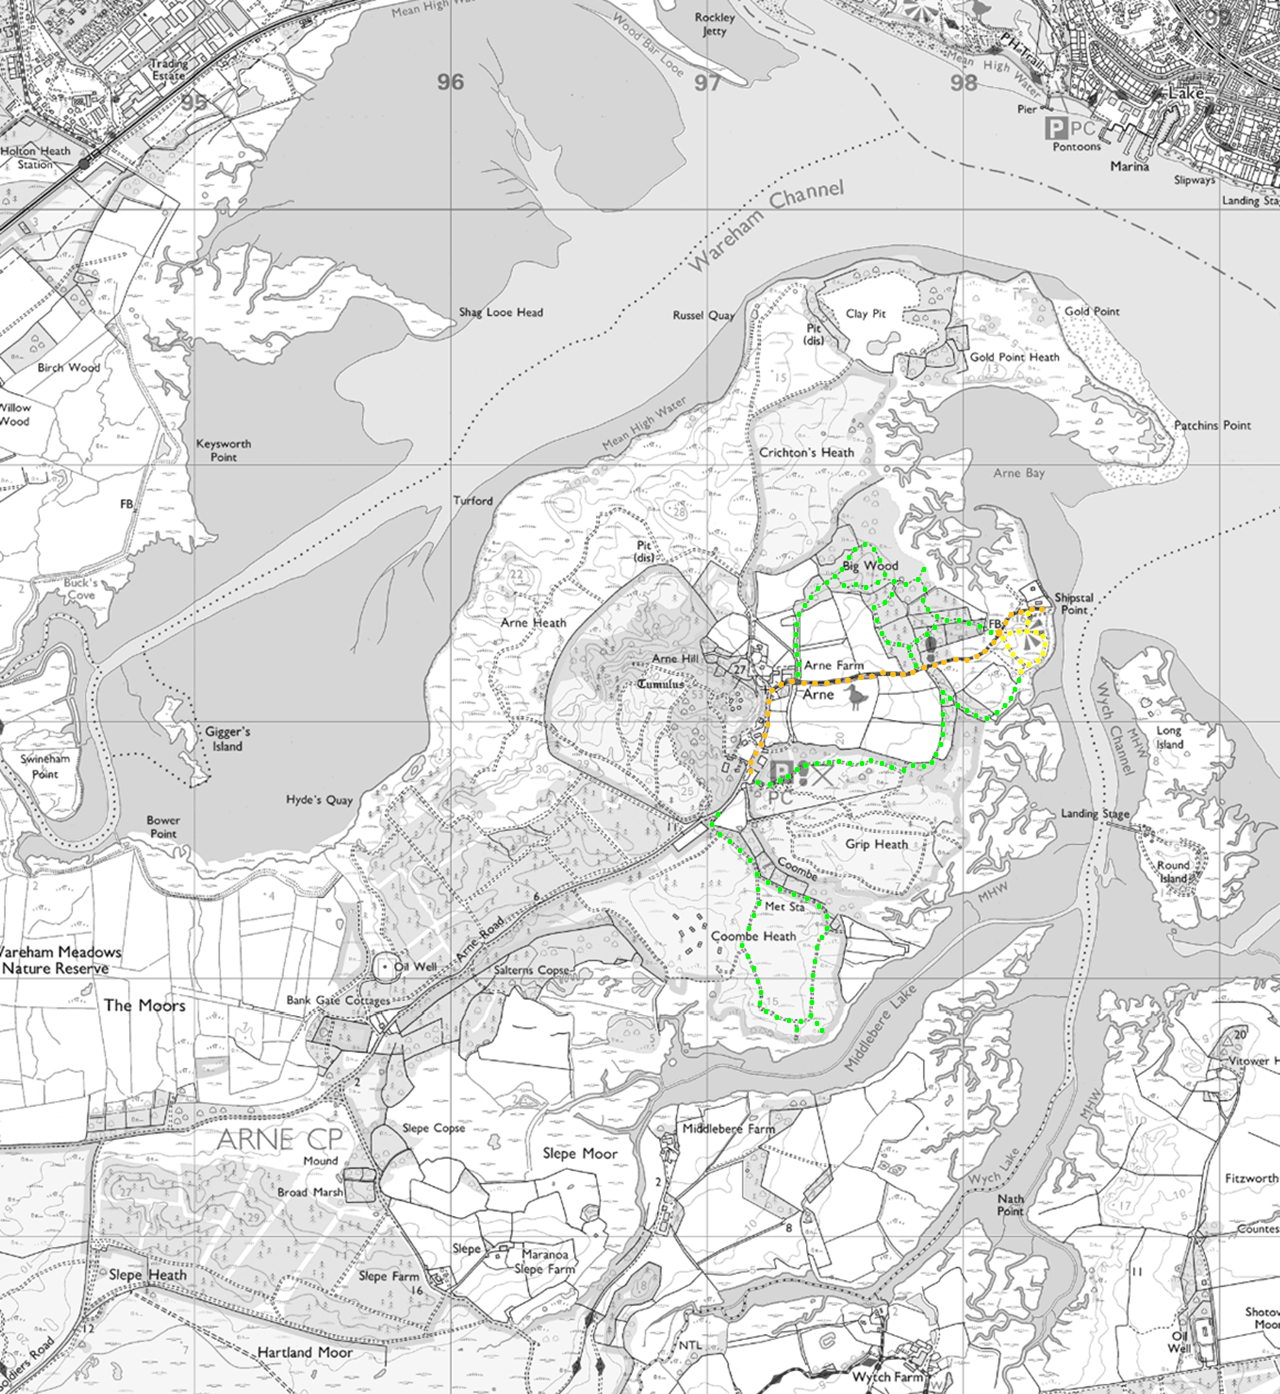 The orange route is the main path from the car park to Shipstal Point and is a designated public footpath (although the RSPB have just started steering pedestrians away from the initial metalled section of road via an alternative path to Arne Farm), the yellow tracks are those around Shipstal Hill, and the green tracks are other designated routes around the reserve. [Source of base map: MagicMap (c) Crown Copyright and database rights 2016. Ordnance Survey 100022861.]